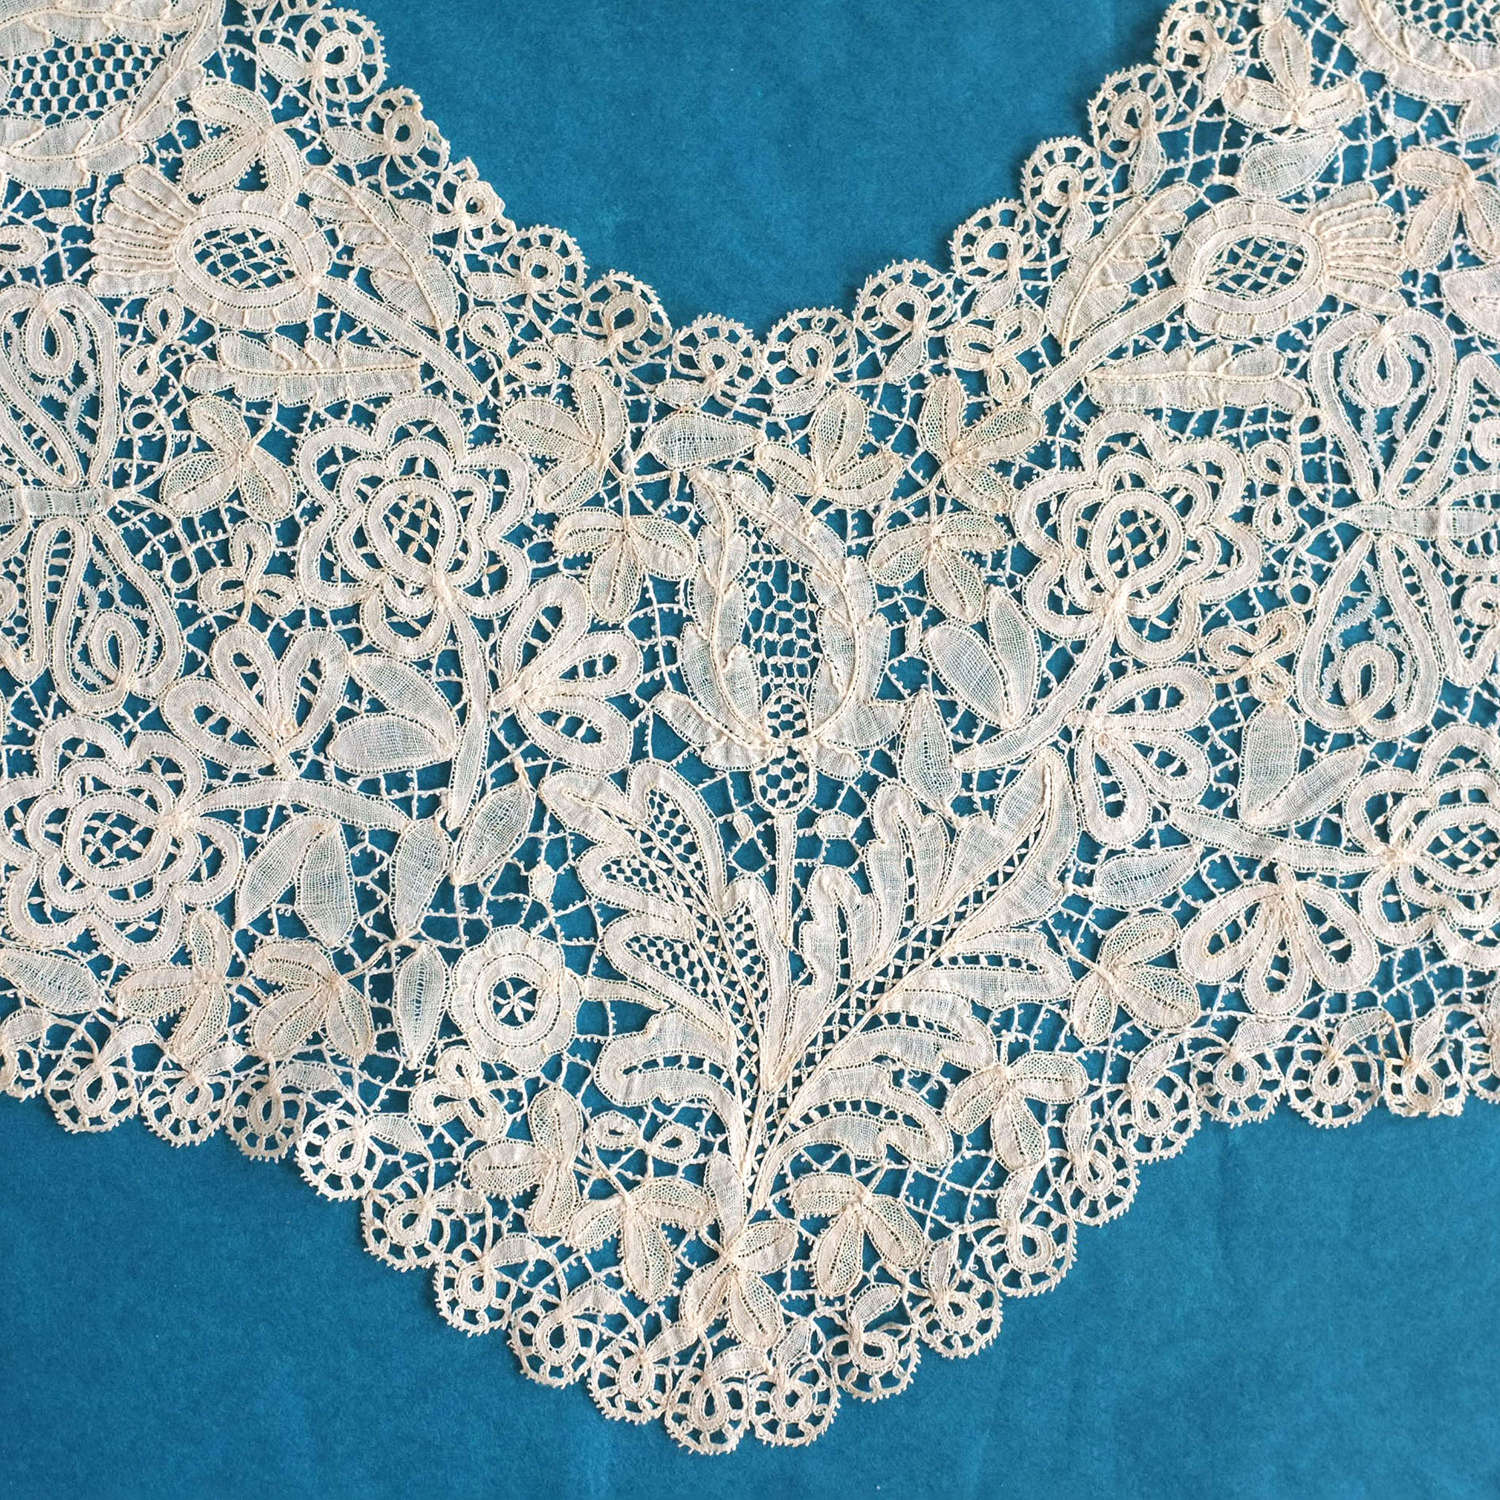 Antique 19th Century Honiton Lace Collar - Thistles & Butterflies